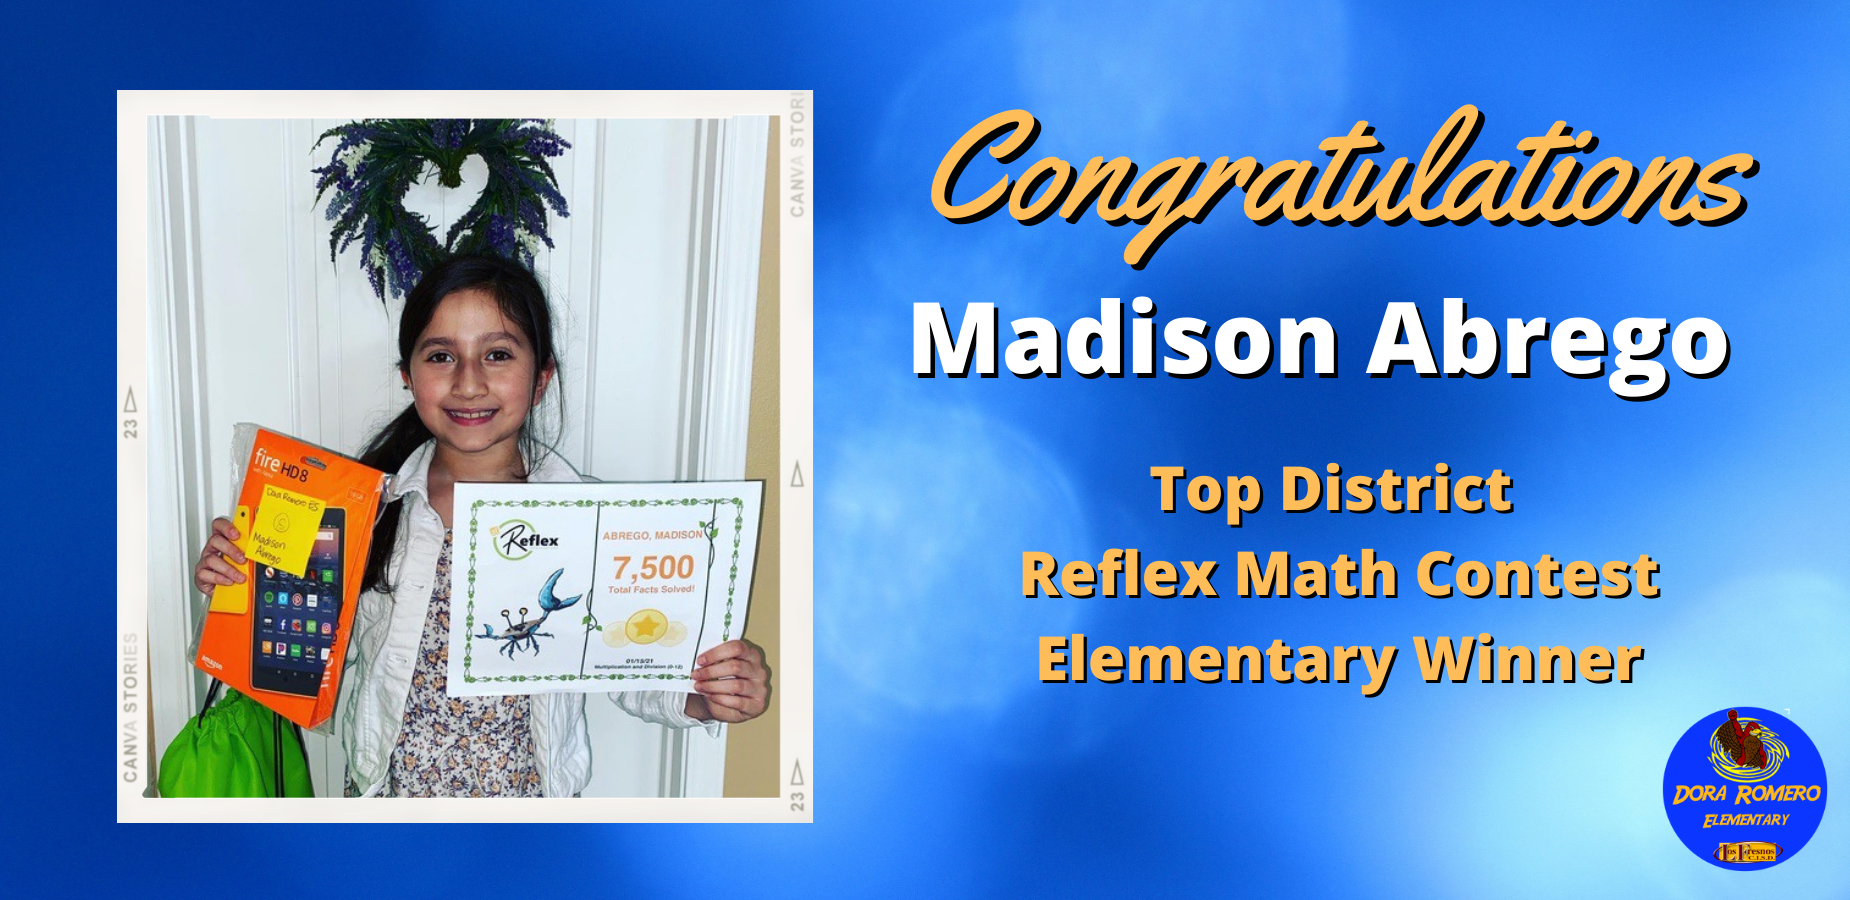 Congratulations Madison Abrego!